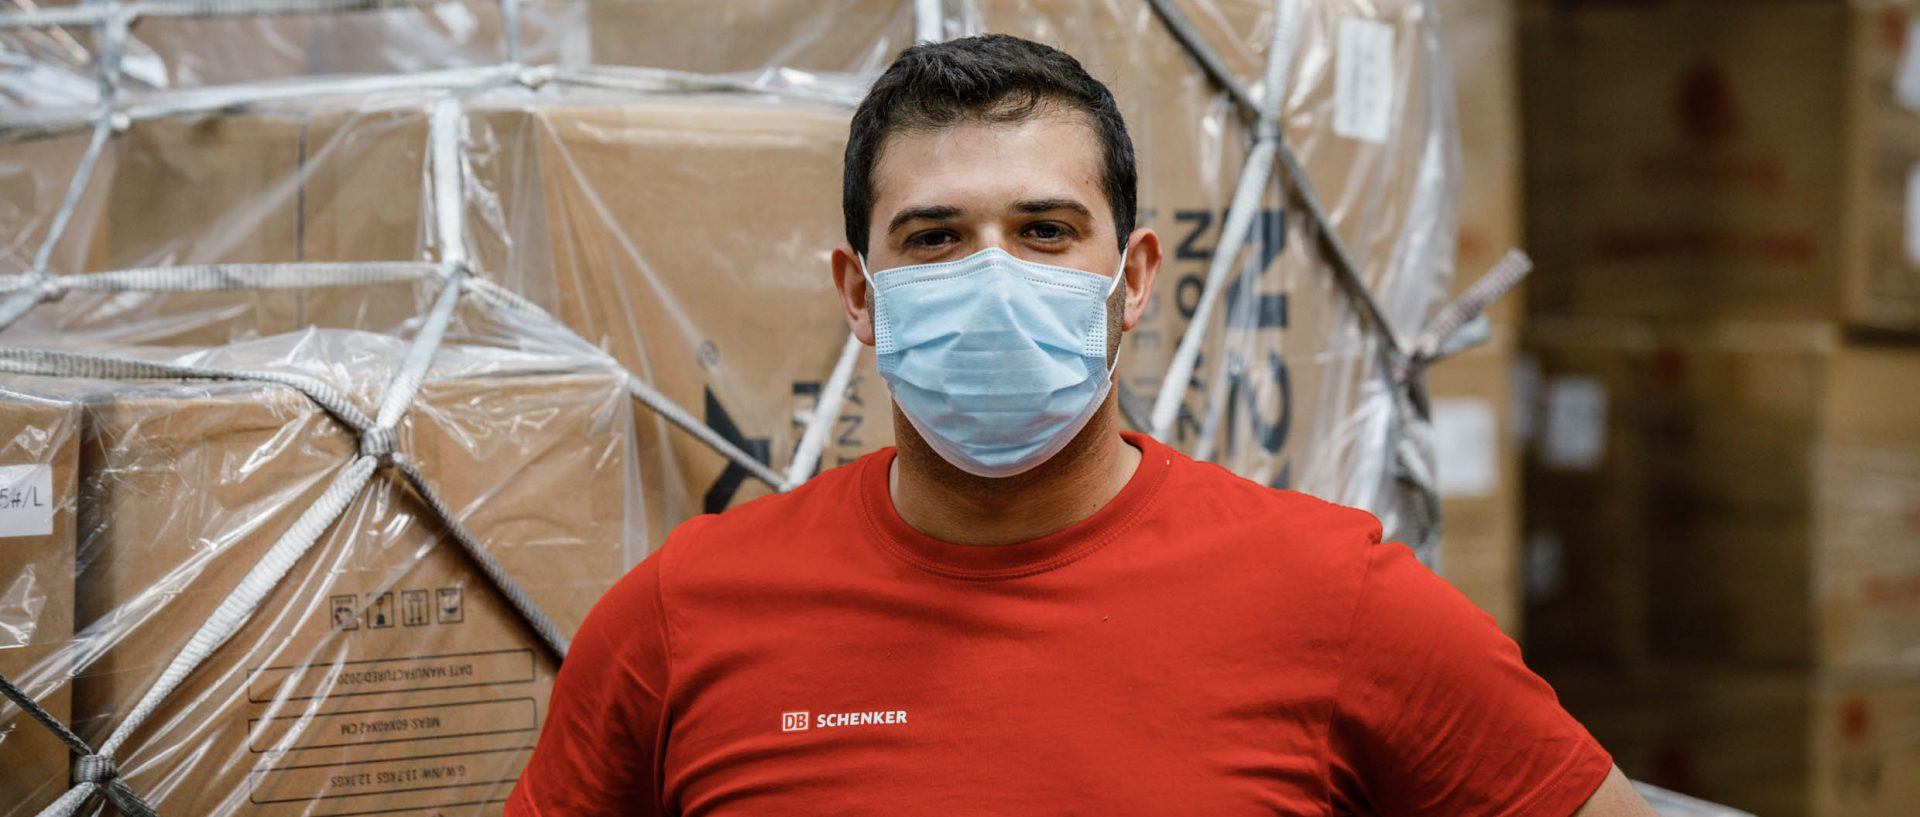 Warehouse employee wearing a mask